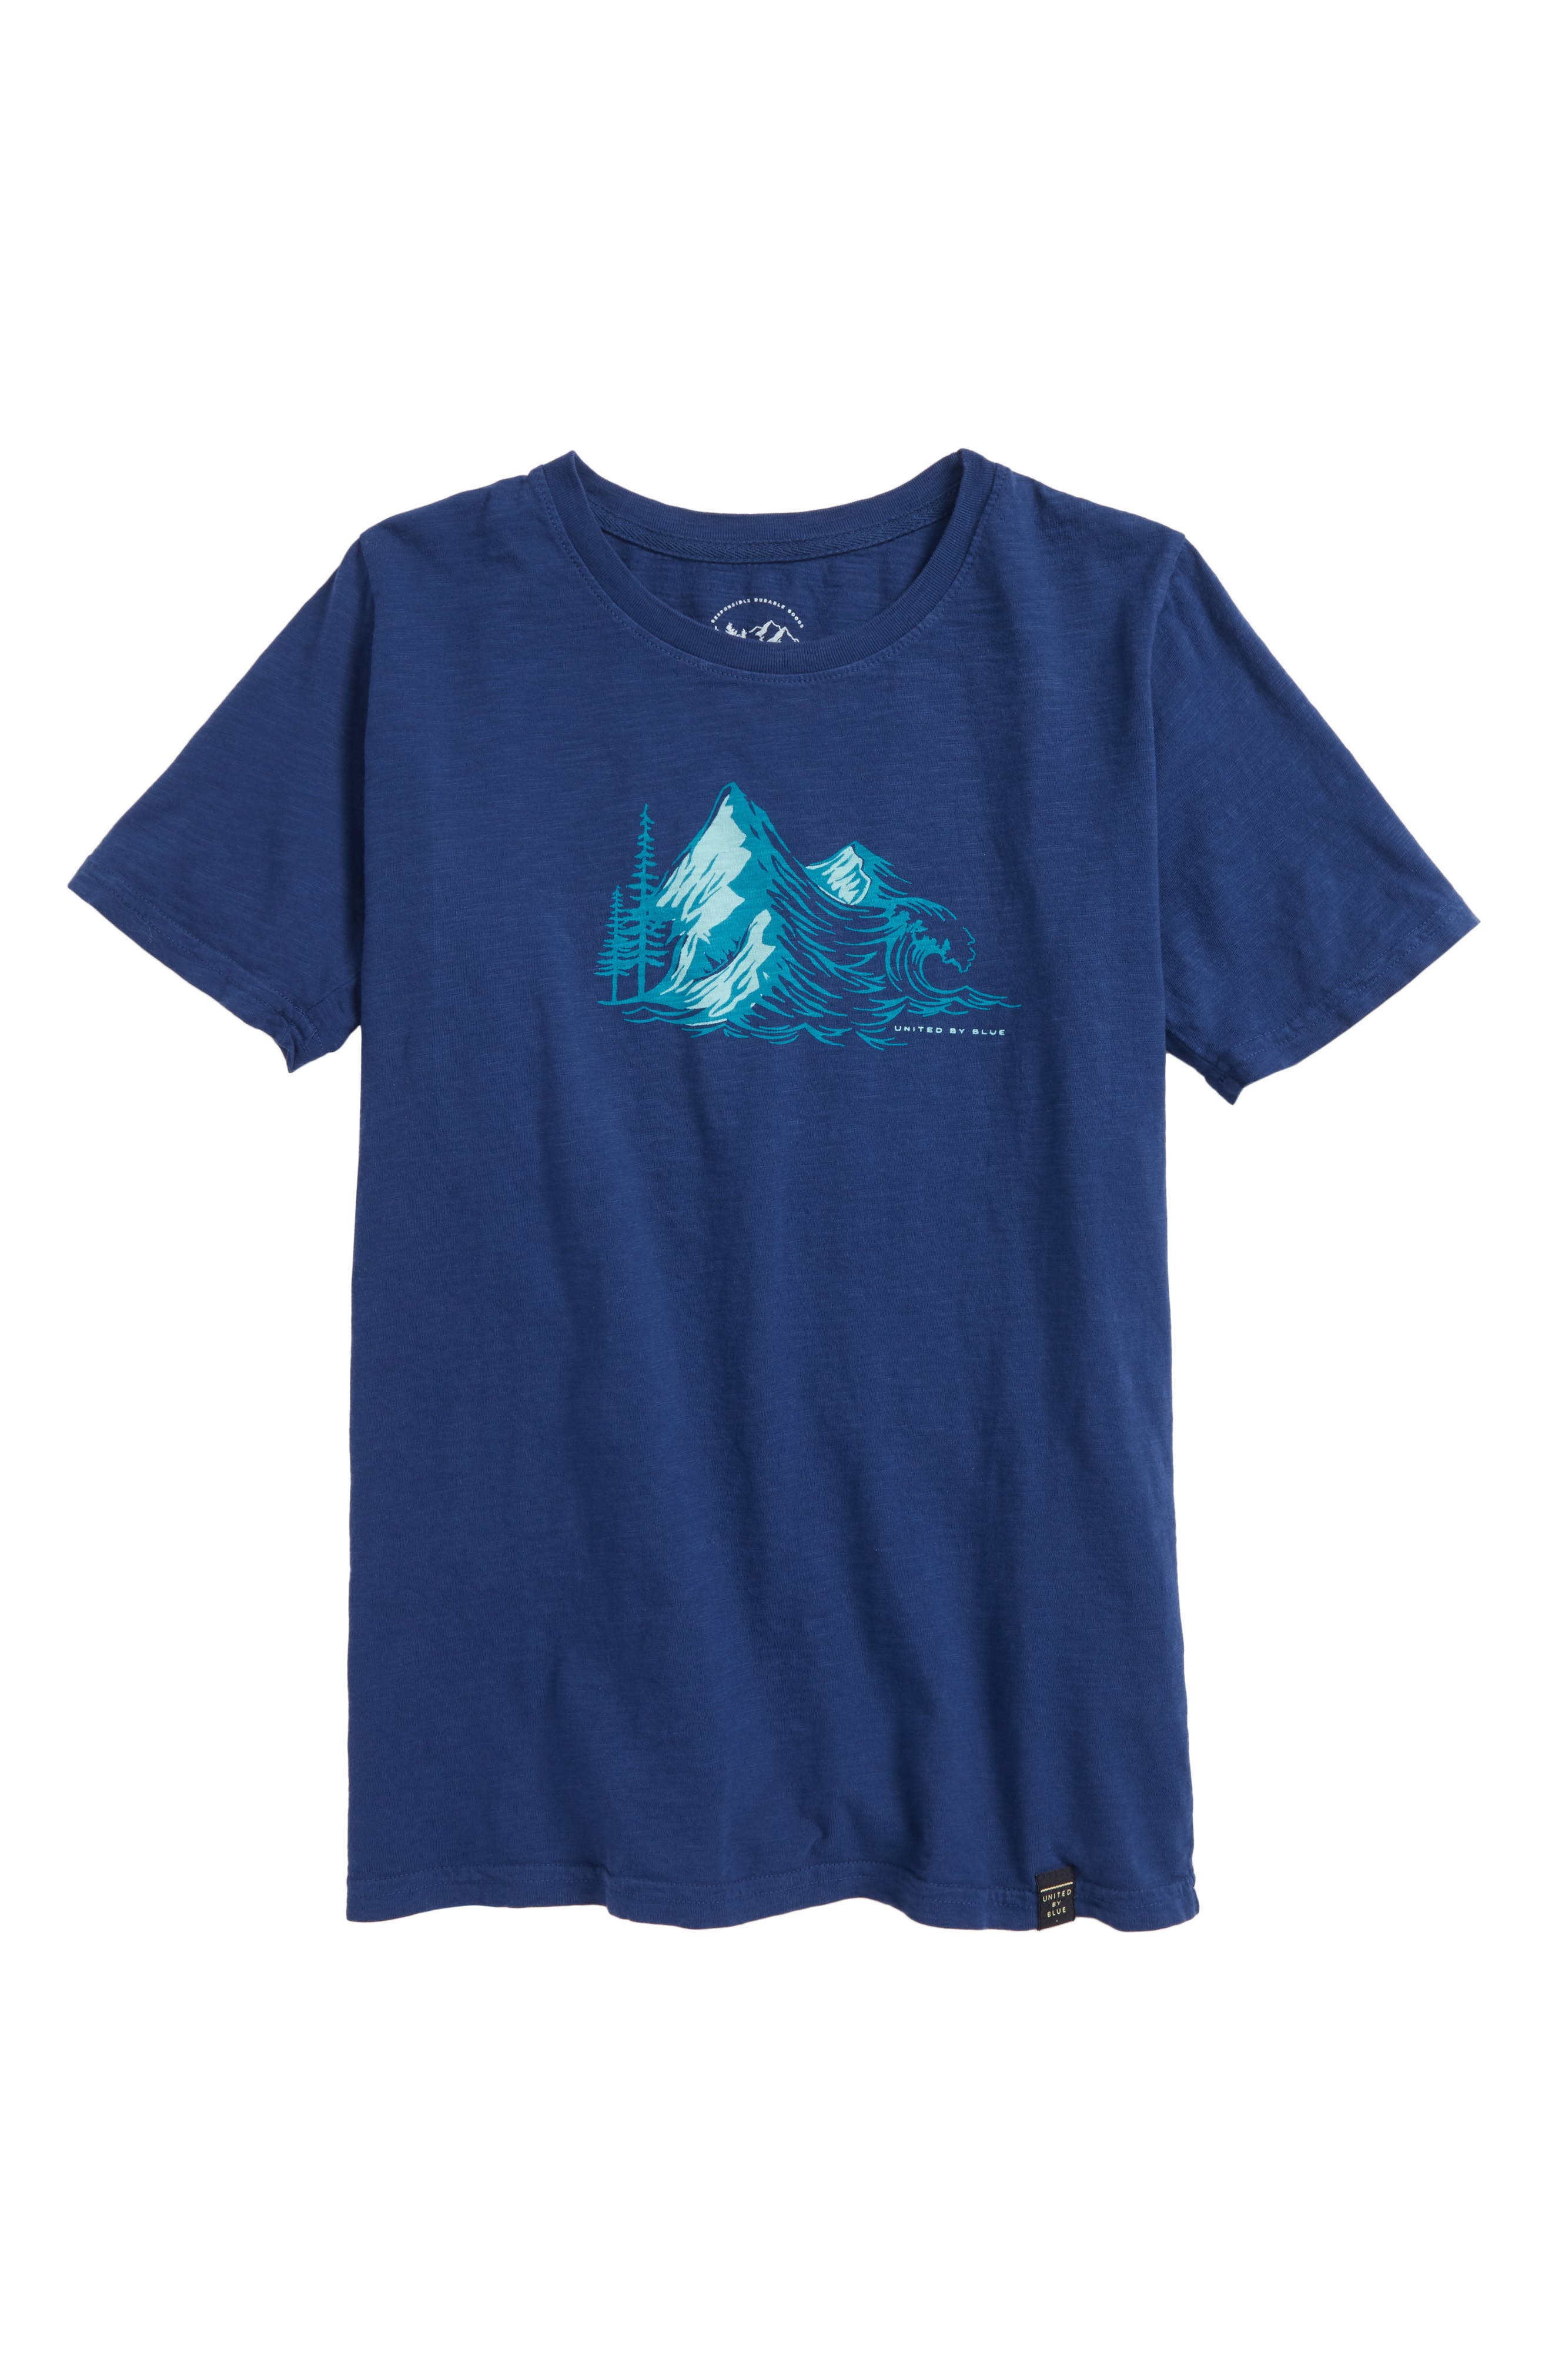 Peaks Graphic Organic Cotton T-Shirt,                         Main,                         color,